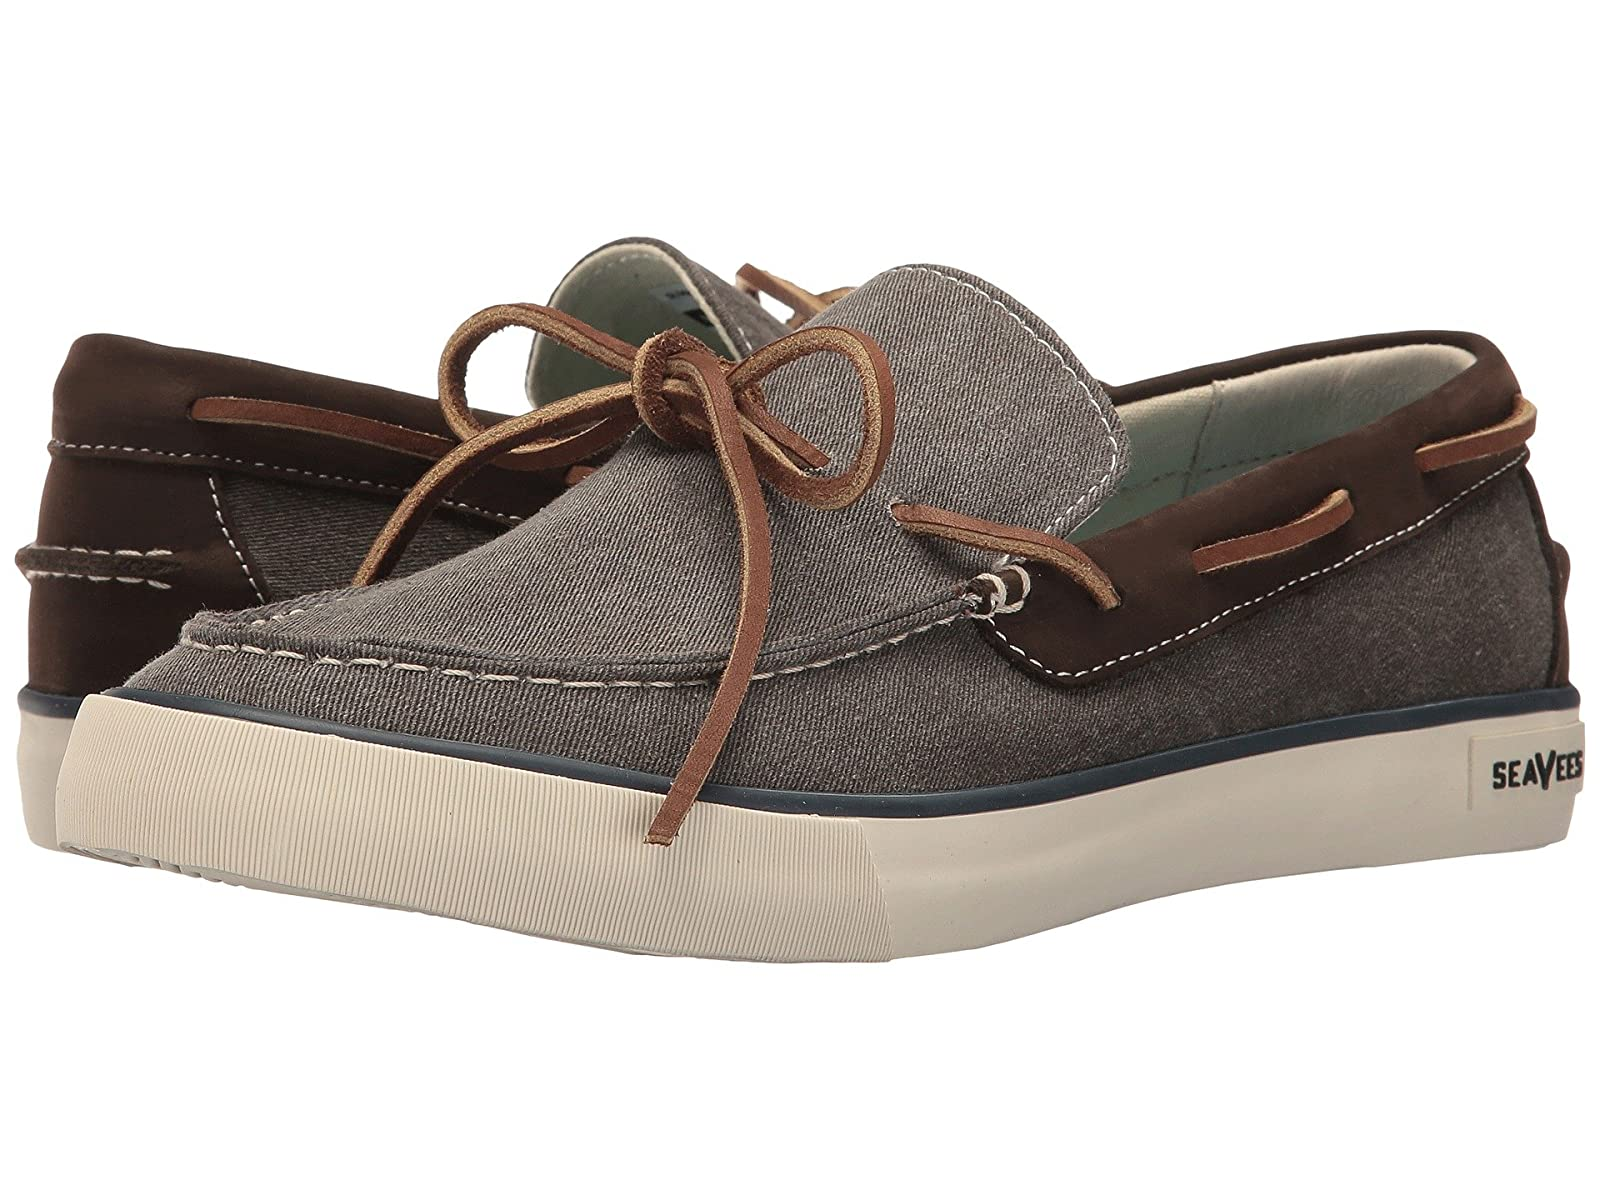 SeaVees 03/66 Sloop MocCheap and distinctive eye-catching shoes